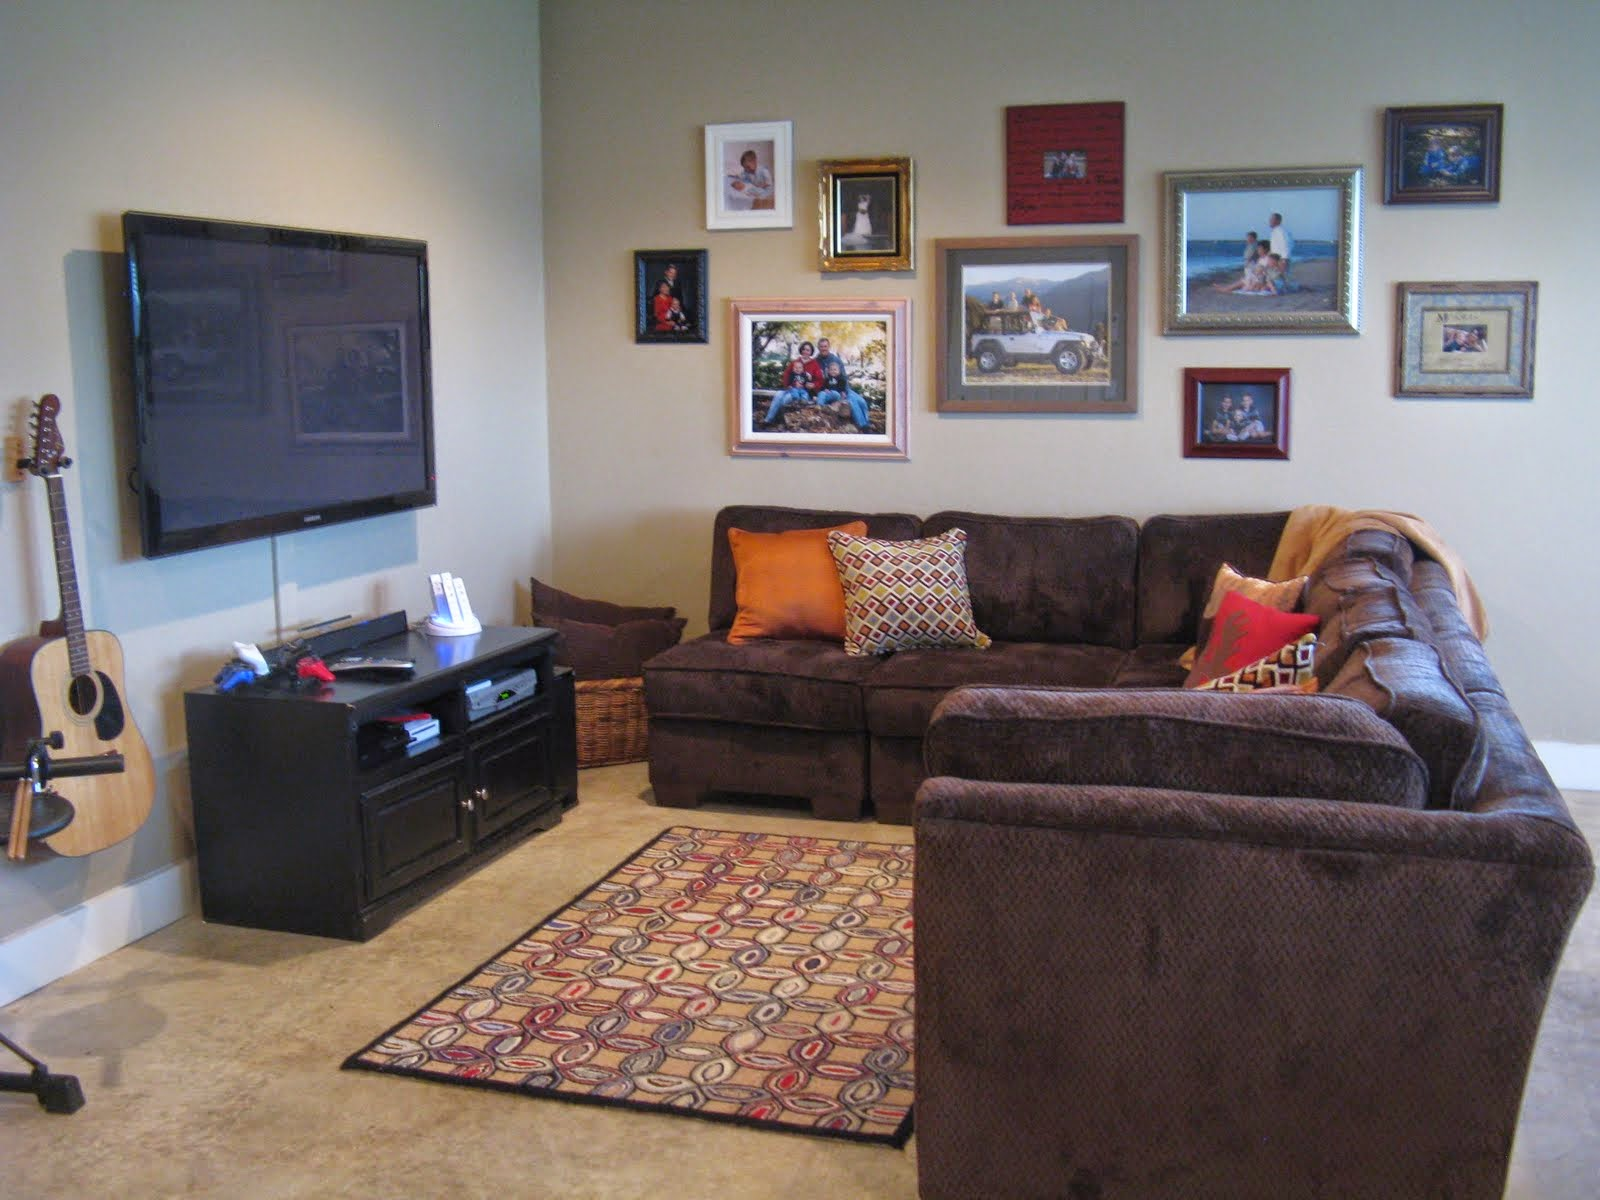 Basement rec room decorating ideas instant knowledge Basement room decorating ideas